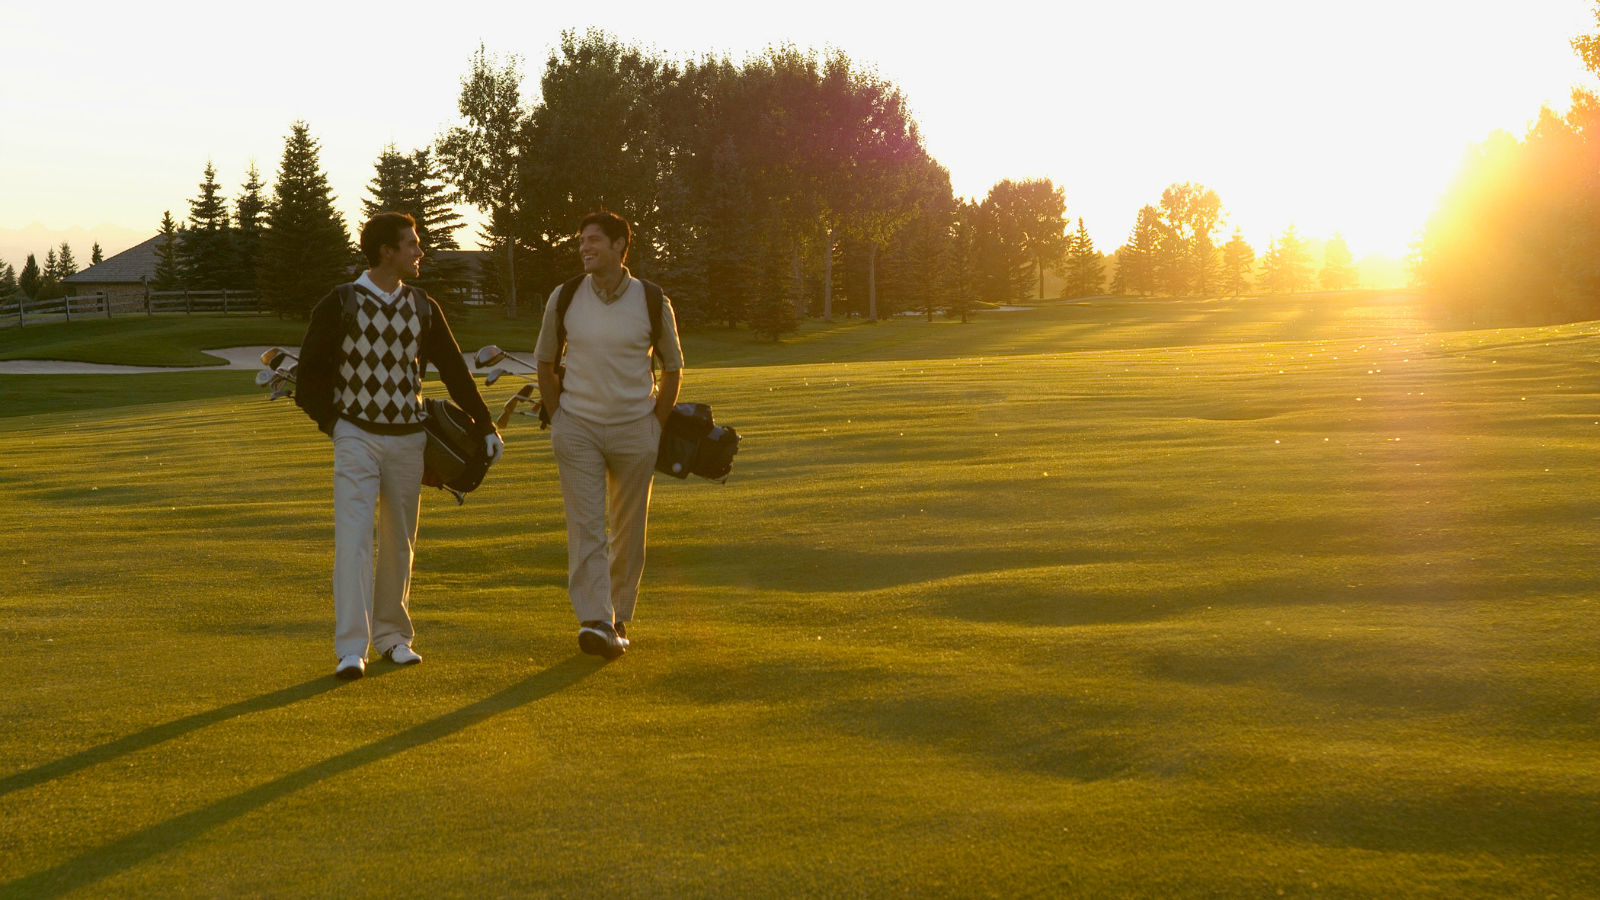 Things to Do in Sunnyvale - Golf